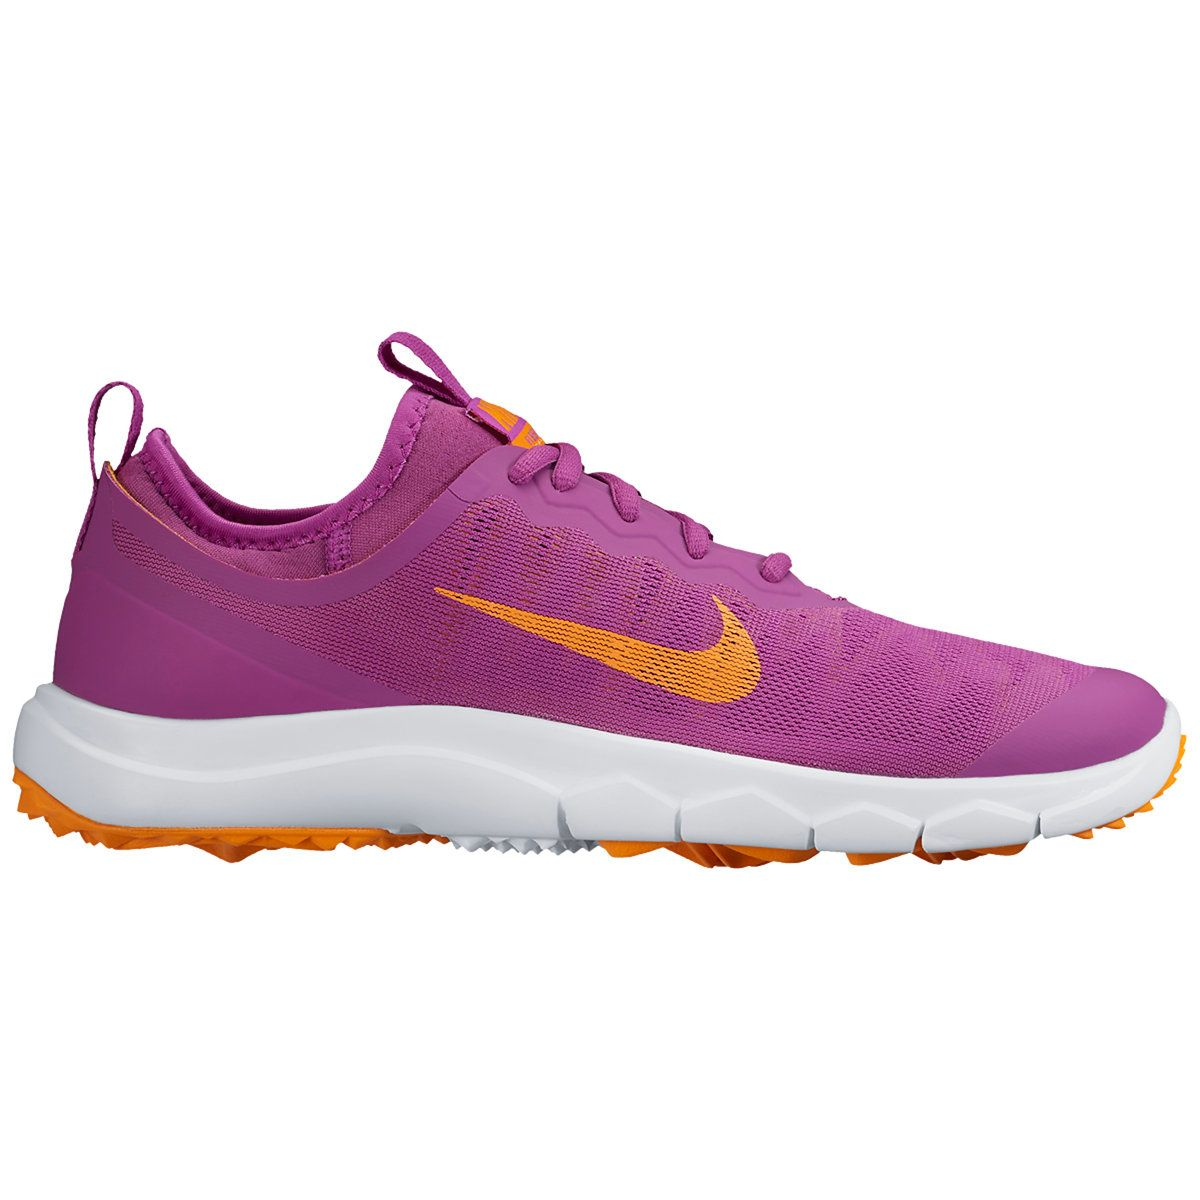 nike free ladies purple golf